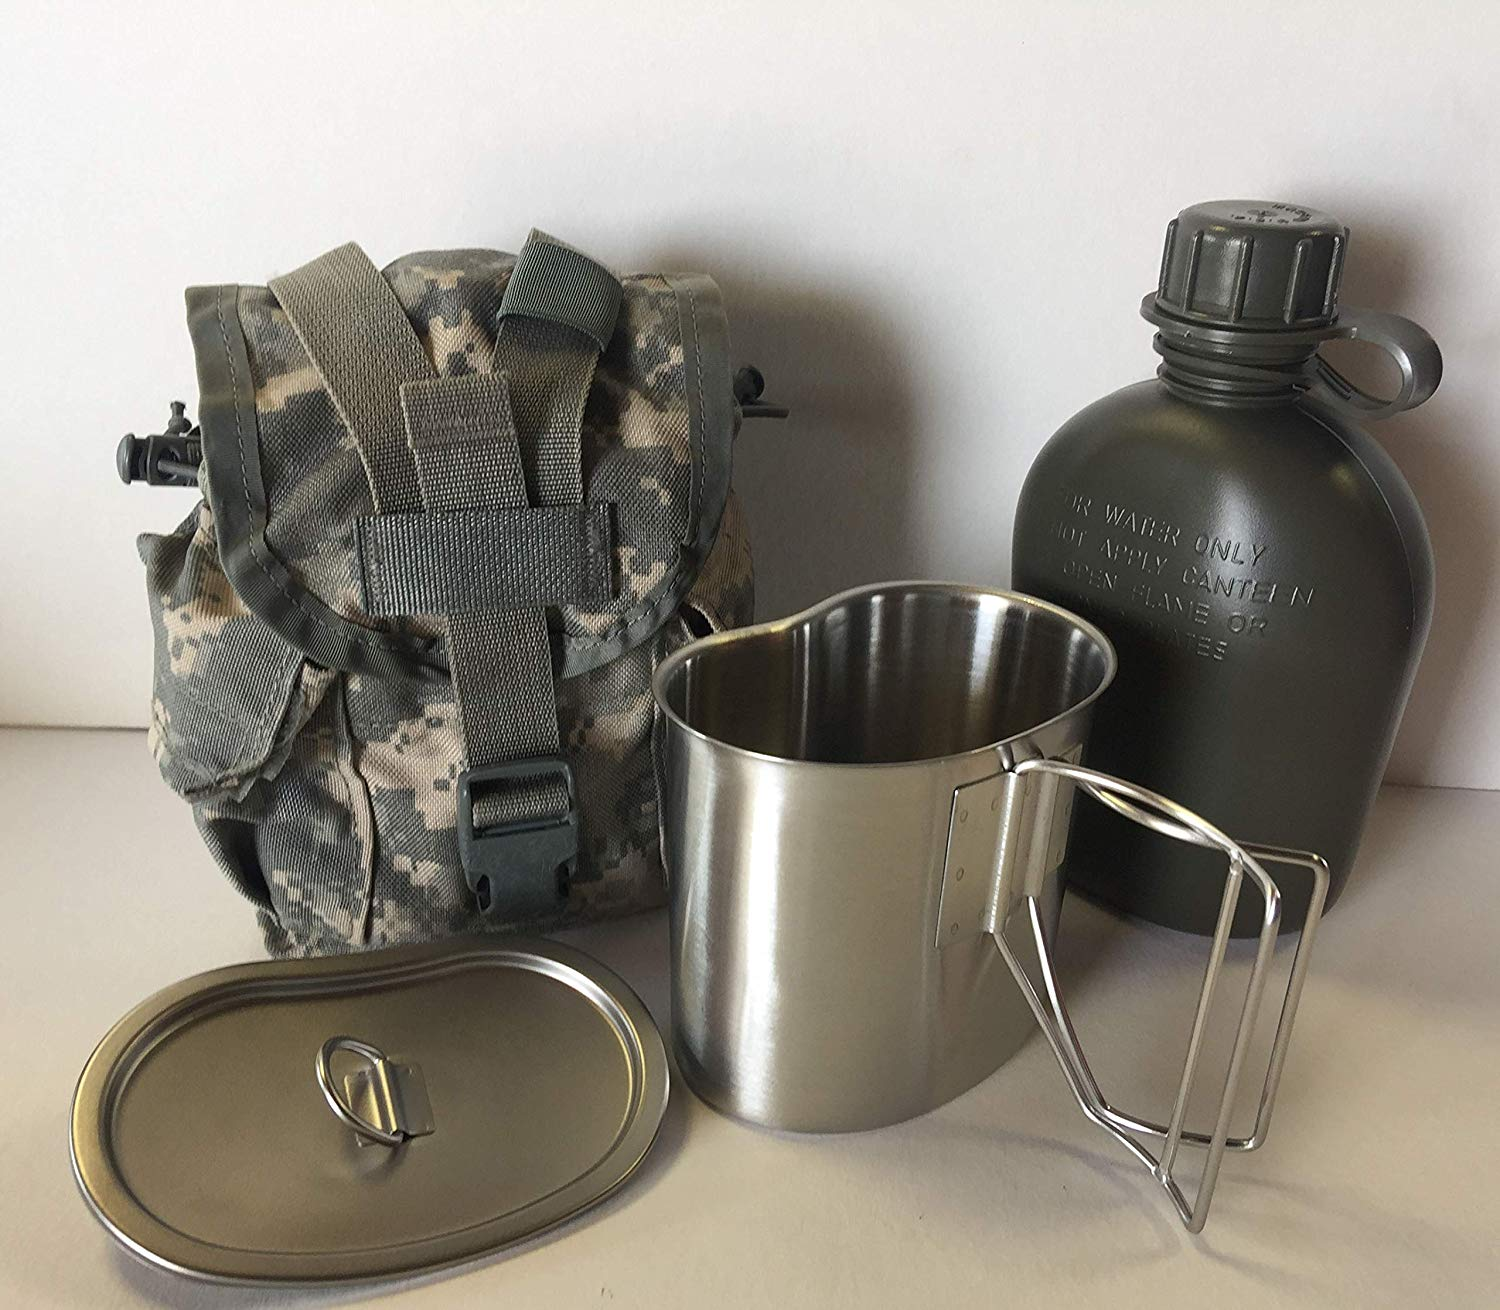 G.A.K 90026 G.I. TYPE, U.S made 1 QT Canteen With Stainless Steel Cup and LID & Military Issue ACU MOLLE II Pouch Kit.